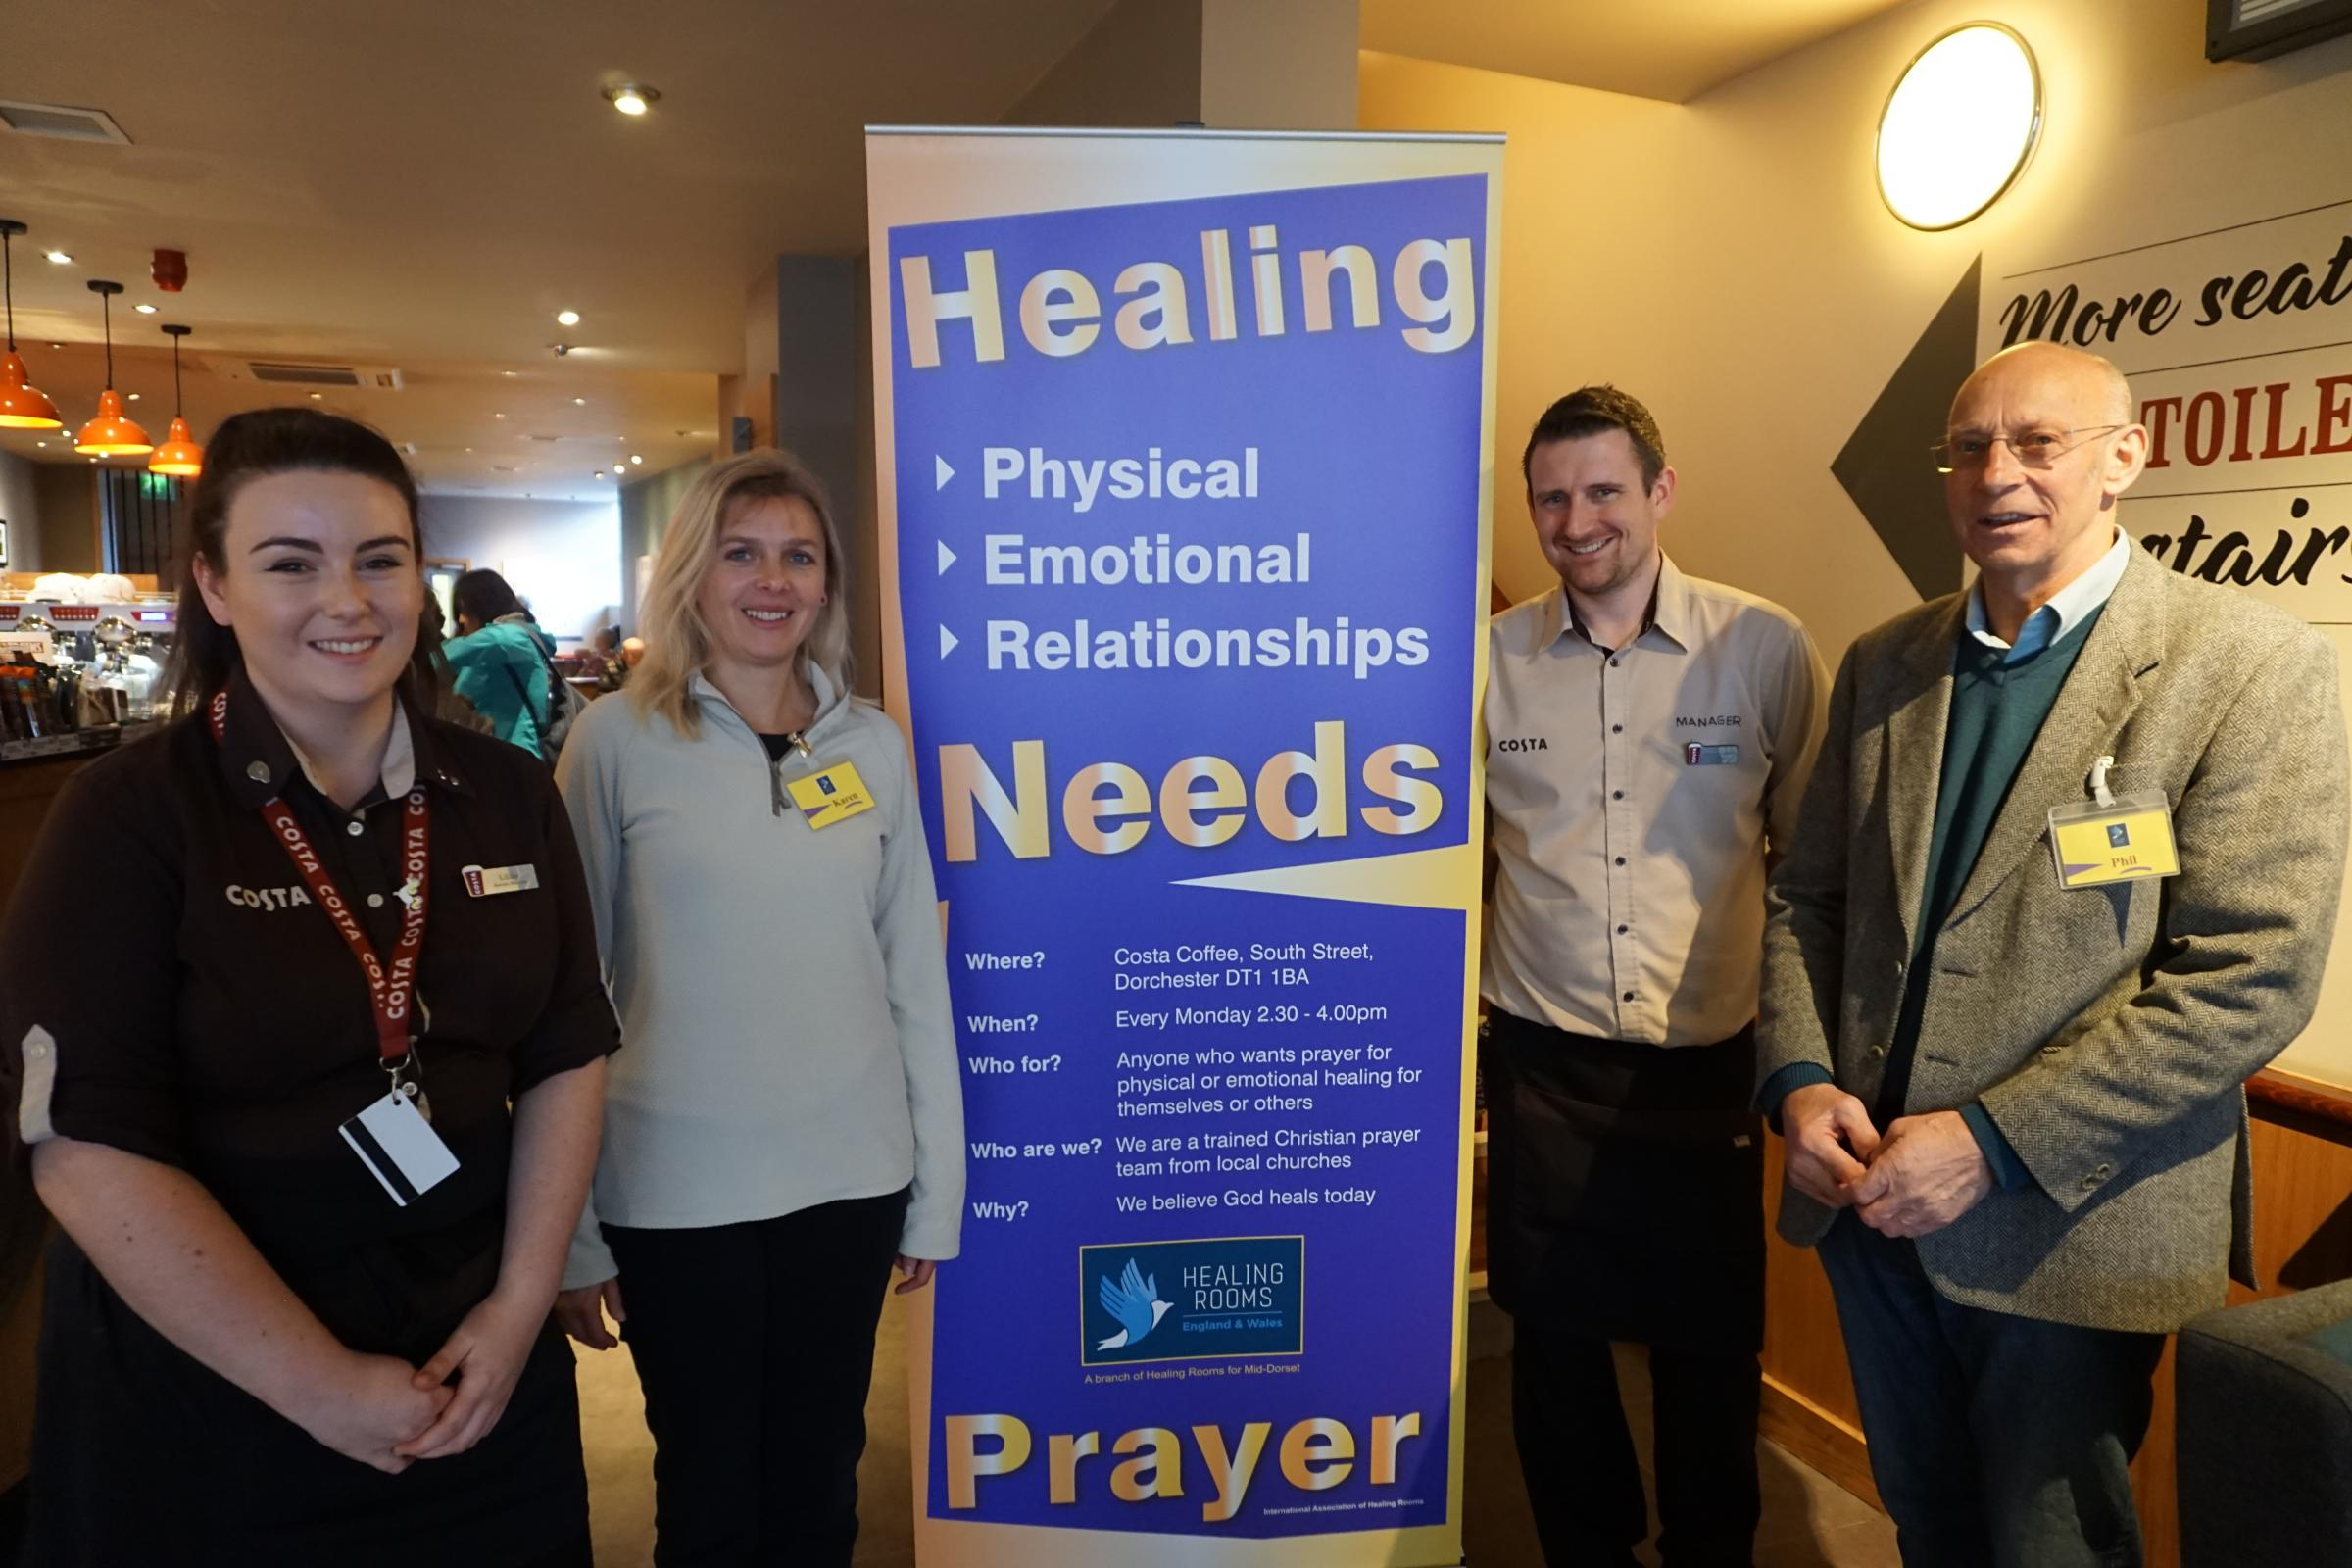 Healing Rooms Launched At Costa Coffee In Dorchester